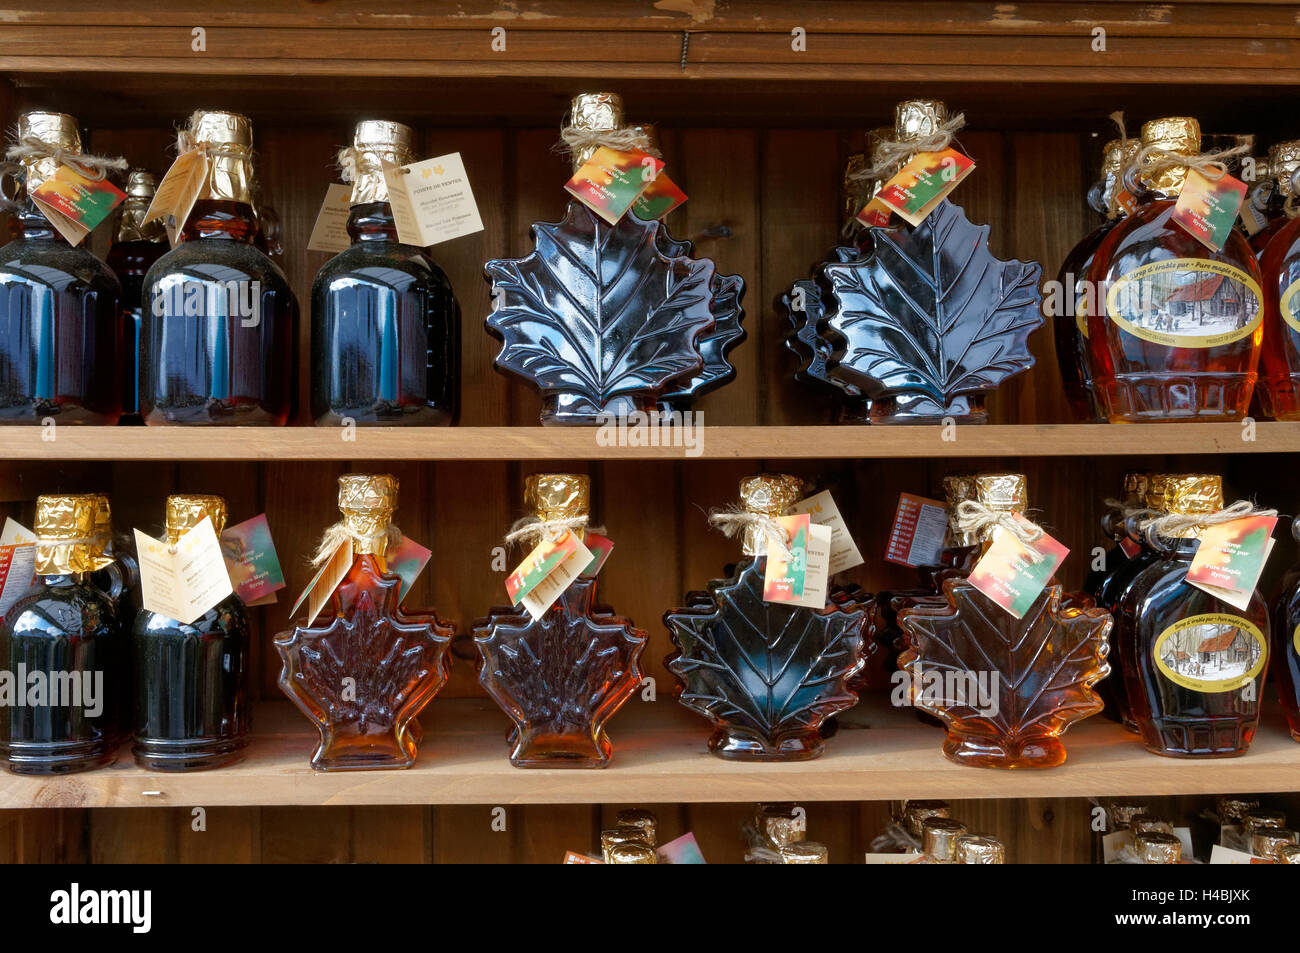 bottles-of-canadian-maple-syrup-lined-up